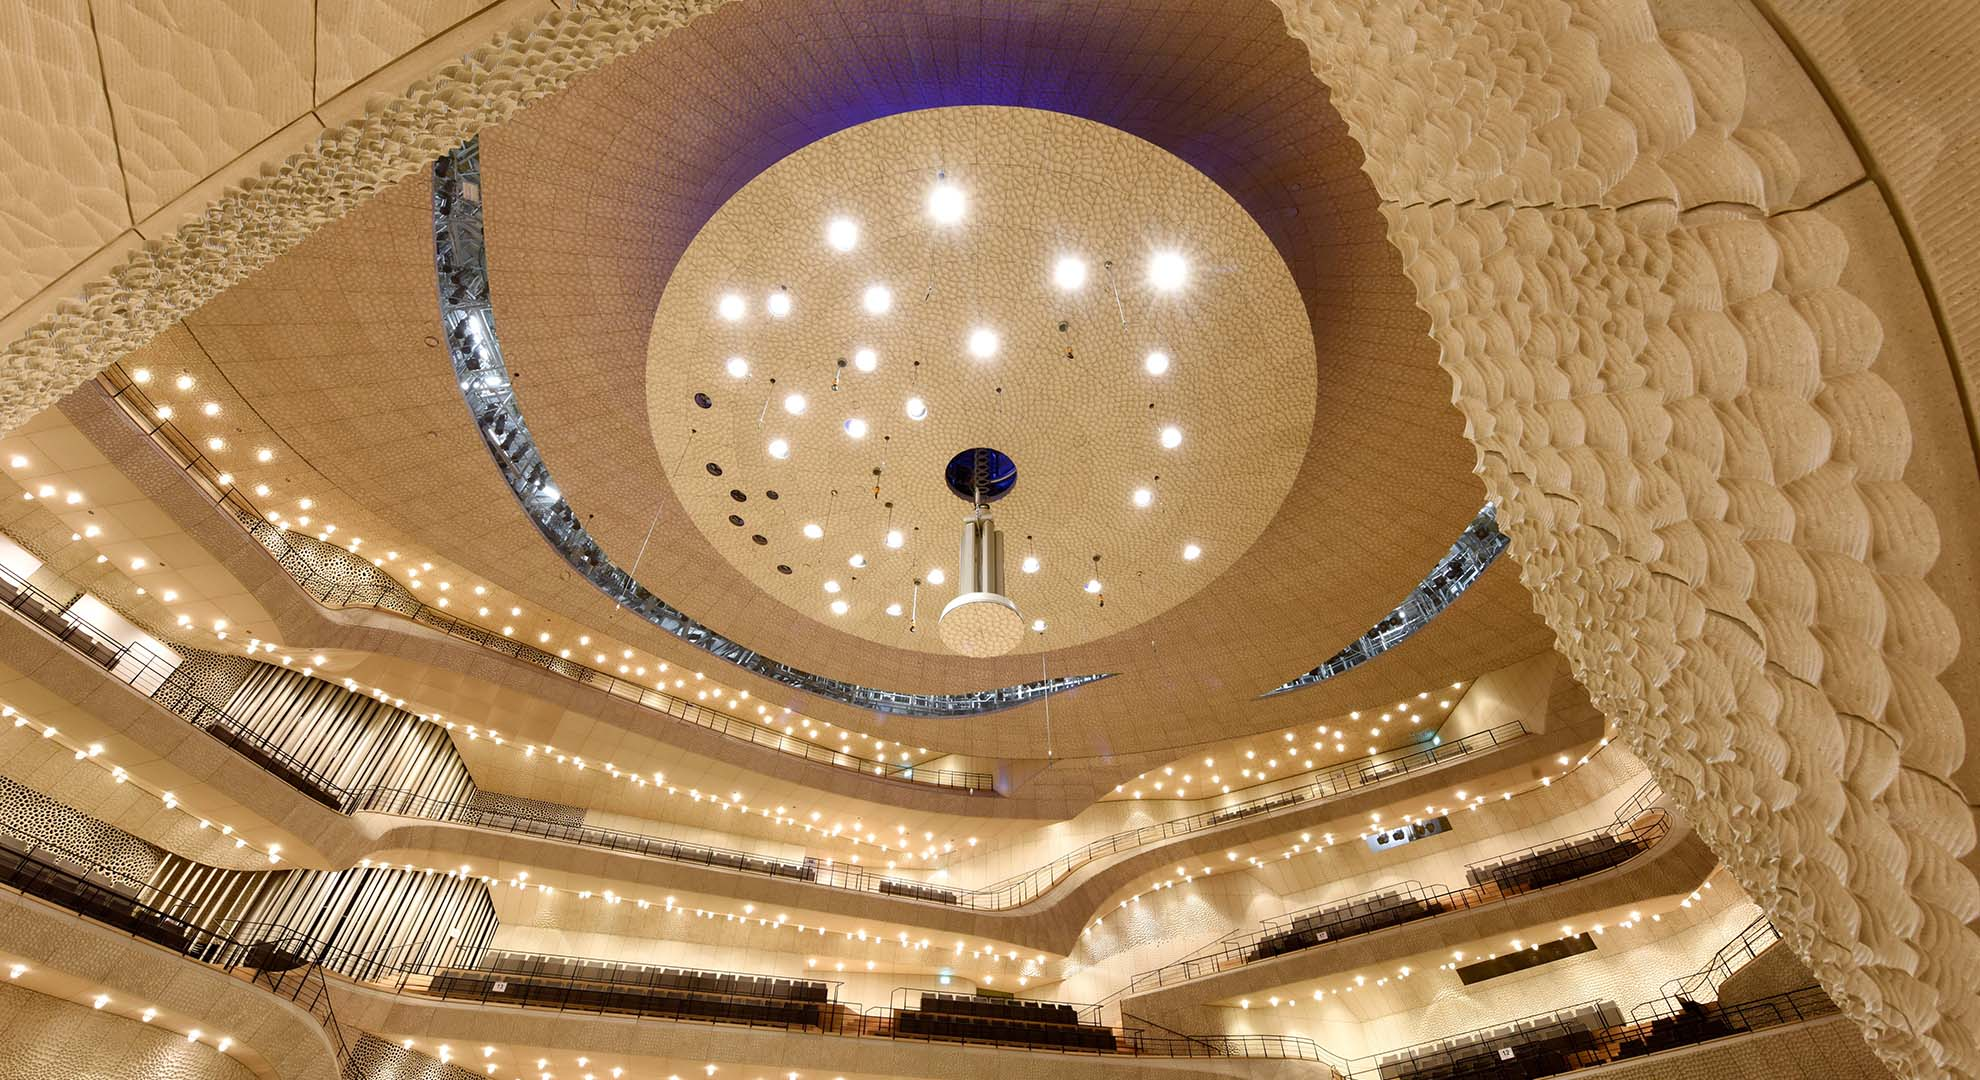 Acoustic panels can be used to get the best acoustics in a chamber music hall or to avoid traffic and urban noise.